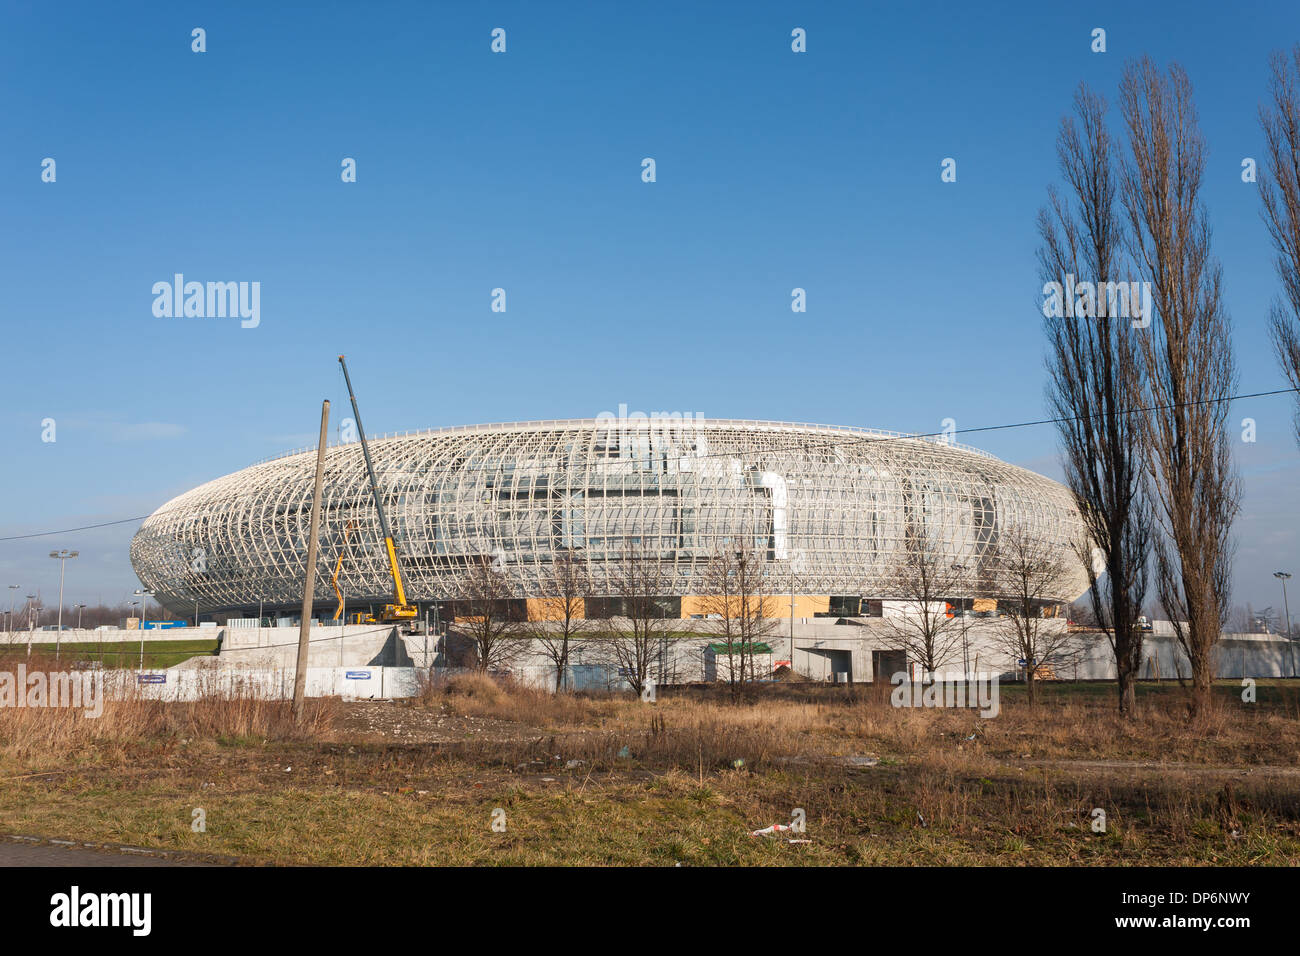 New sports hall 'Arena' in Czyzyny Krakow during construction - Stock Image